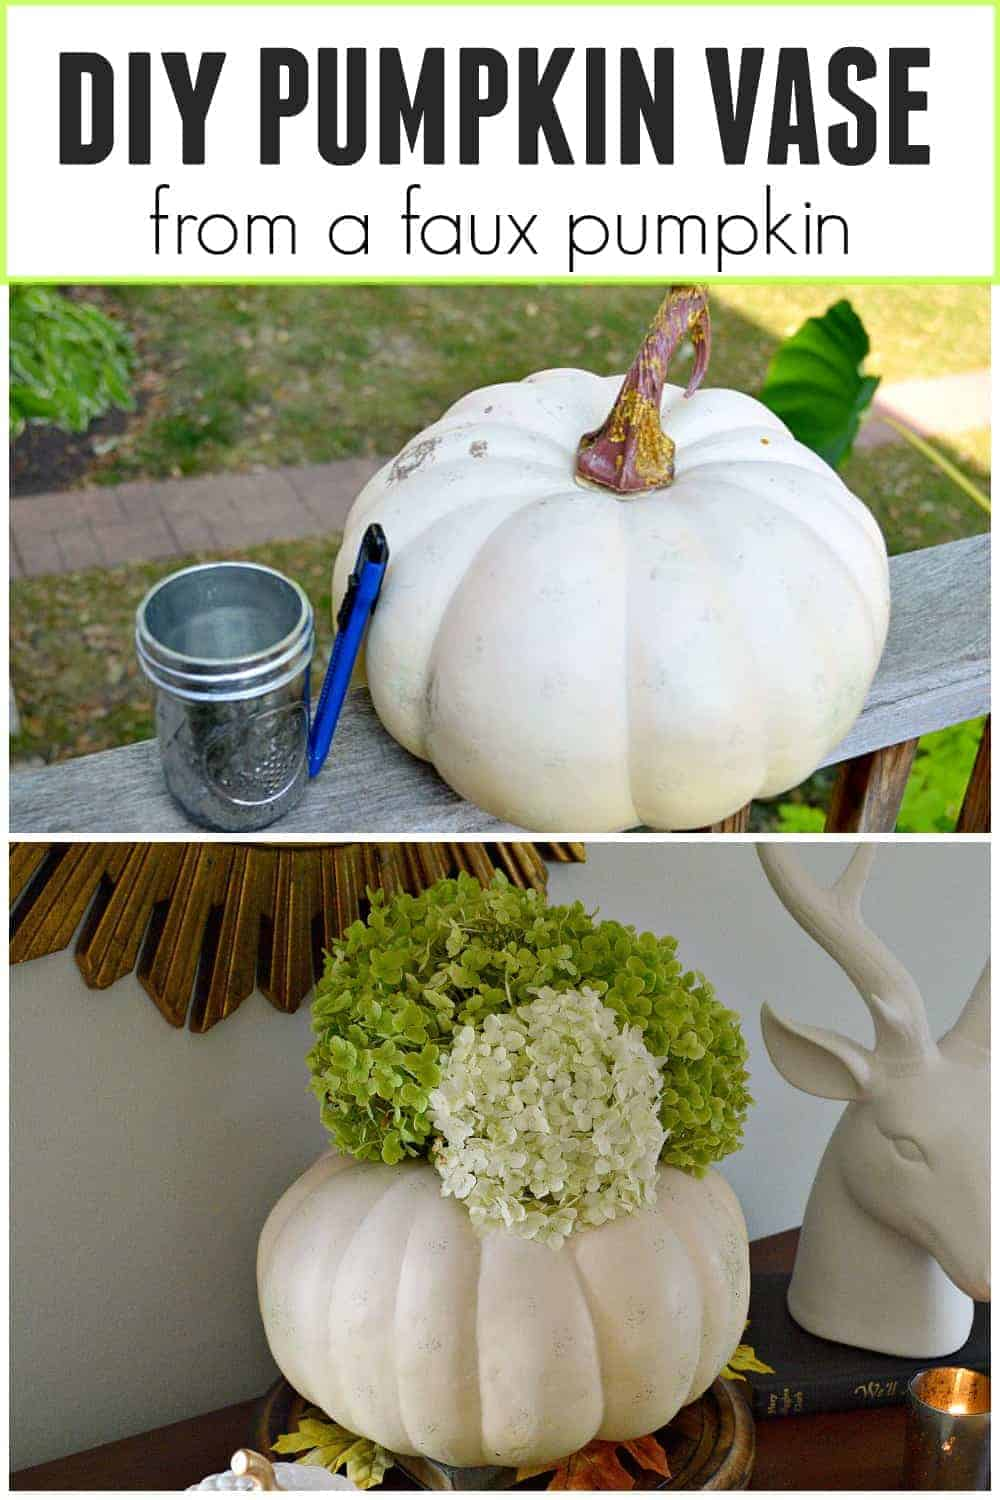 collage with faux pumpkin and faux pumpkin vase, plus a large graphic